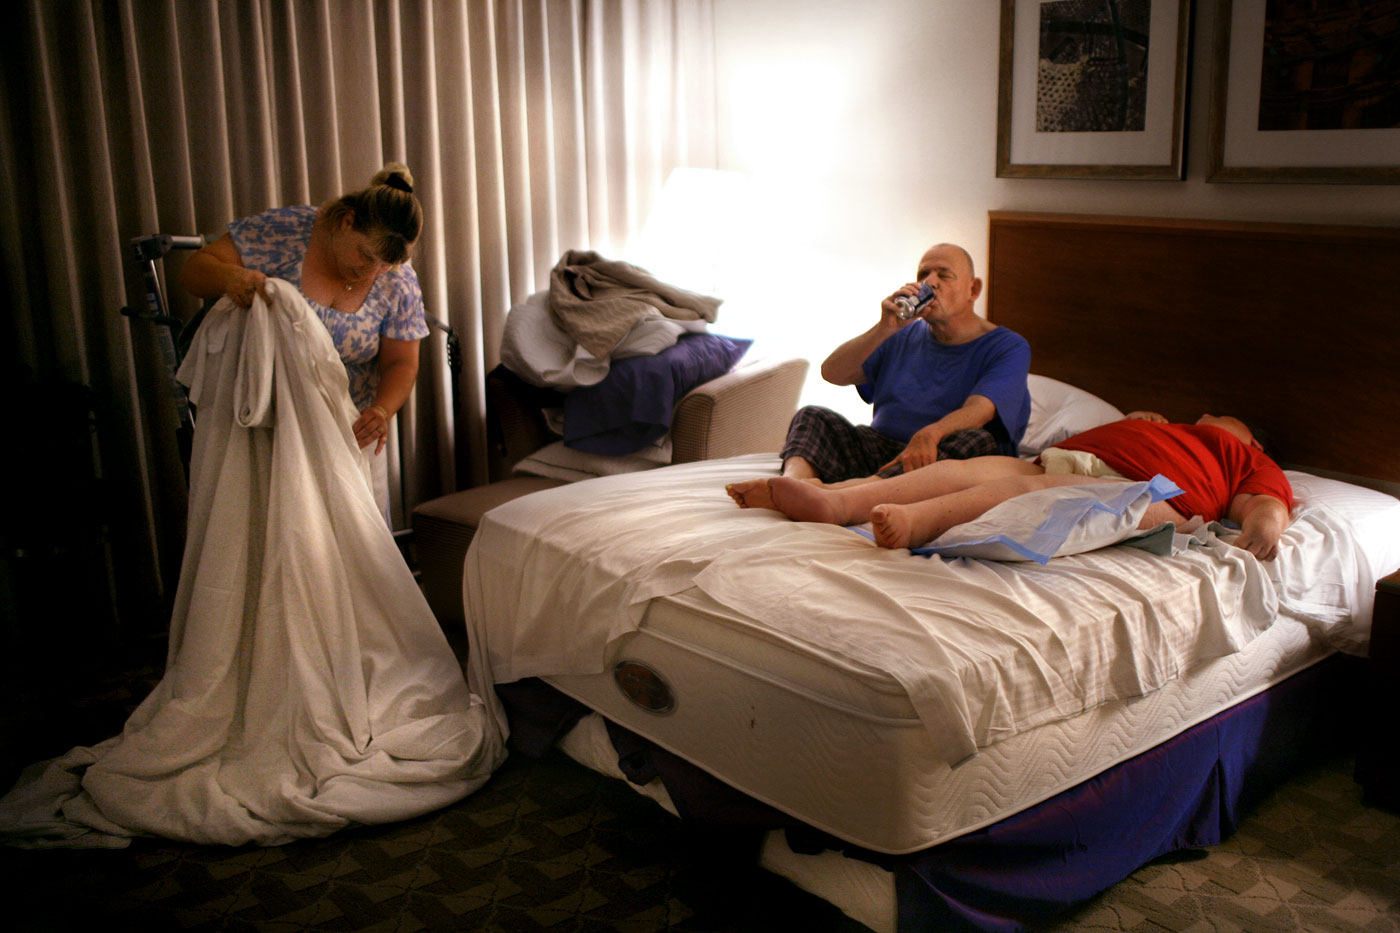 Becky Clark prepares the {quote}honeymoon{quote} bed for Tom and Theresa as they lay together for the first time. Clark is one of the personal care attendants for the couple.